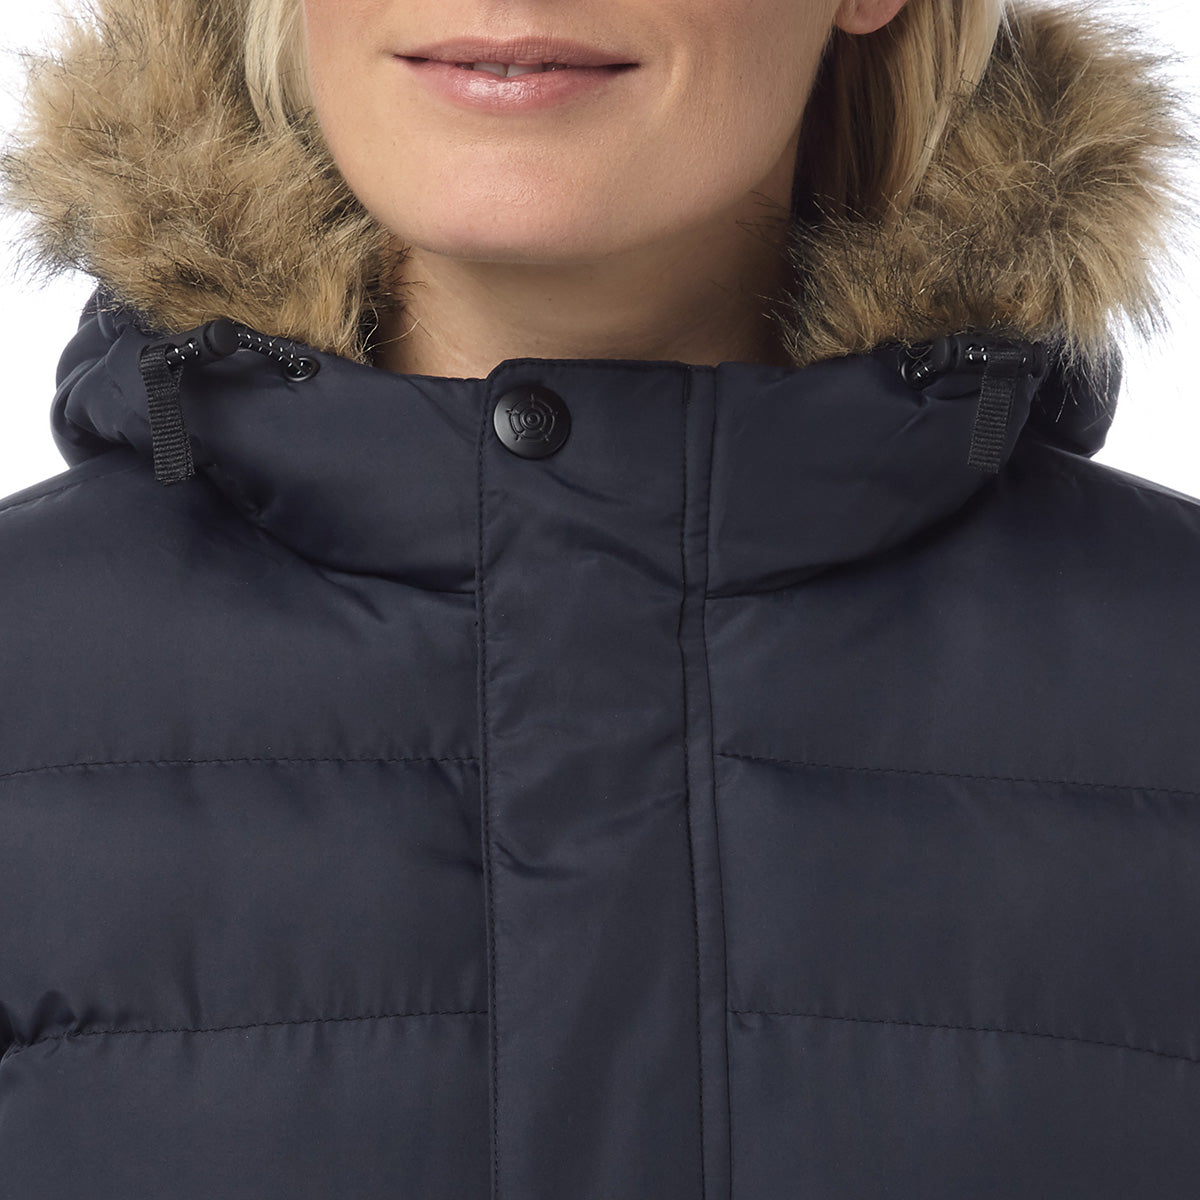 Otley Womens Long Insulated Jacket - Navy image 4